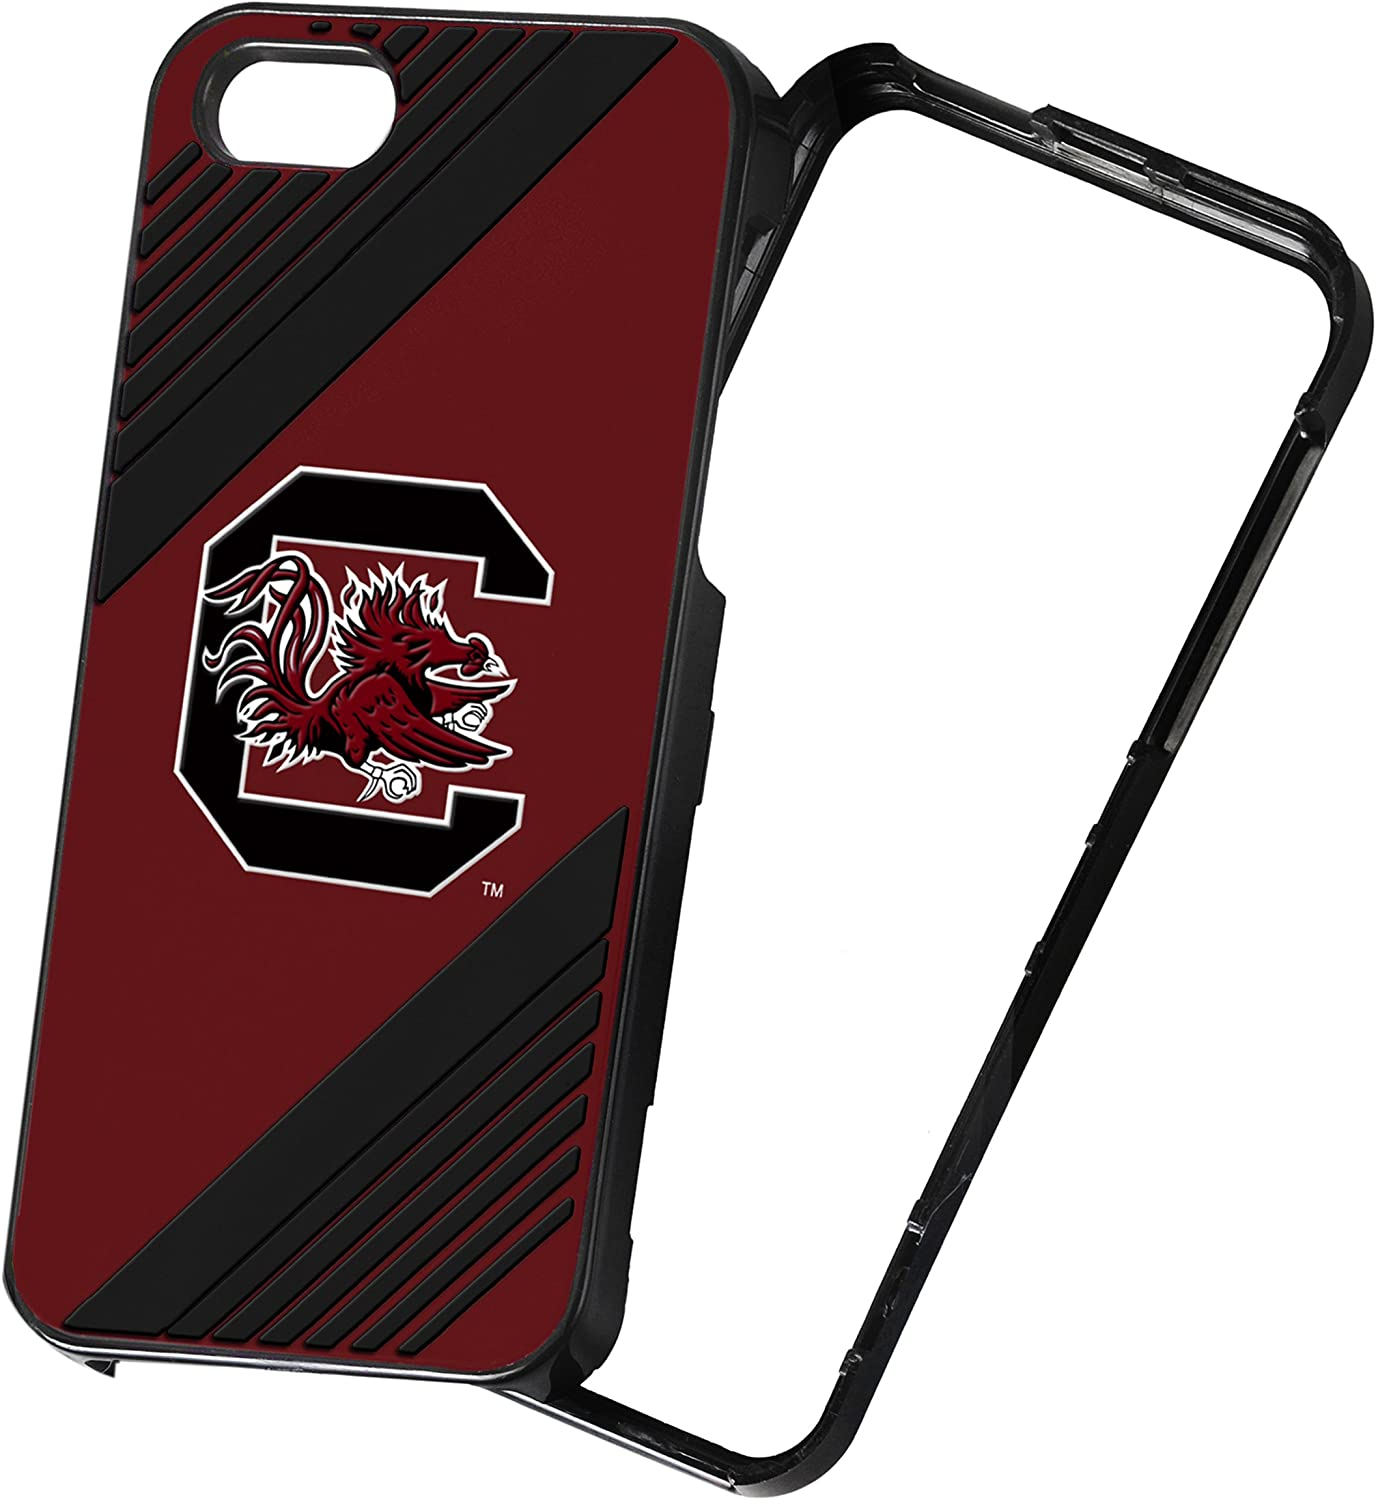 Forever Collectibles NCAA 2-Piece Snap-On iPhone 5/5S Polycarbonate Case - Retail Packaging - FOCO NCAA South Carolina Gamecocks